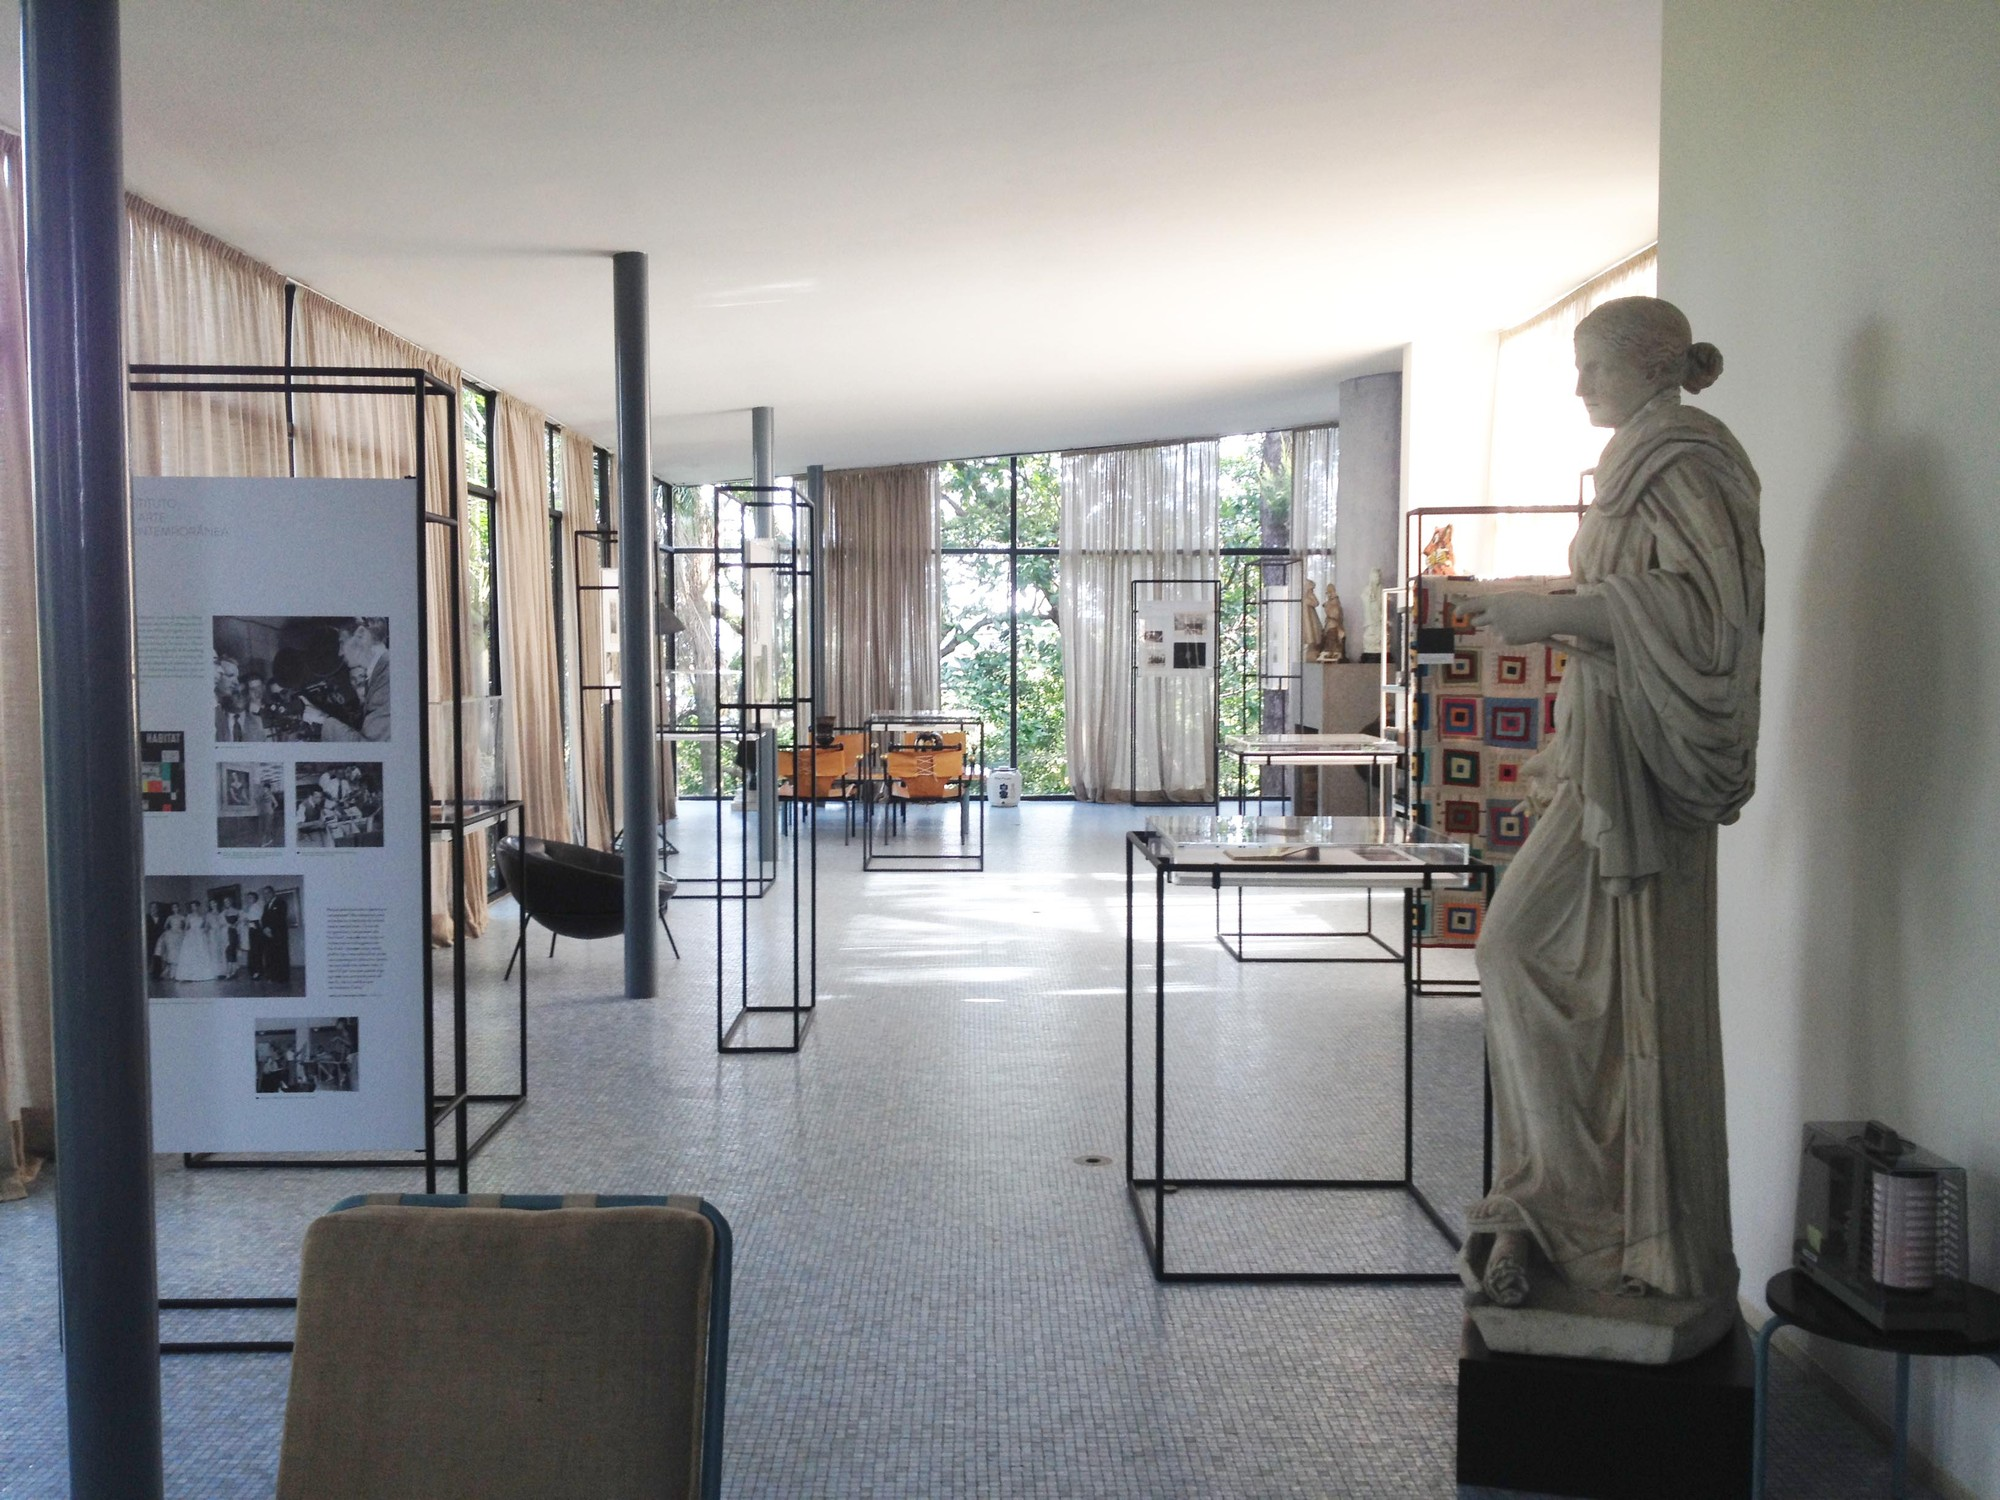 Lina bo bardis archive on display at her glass house in são paulo